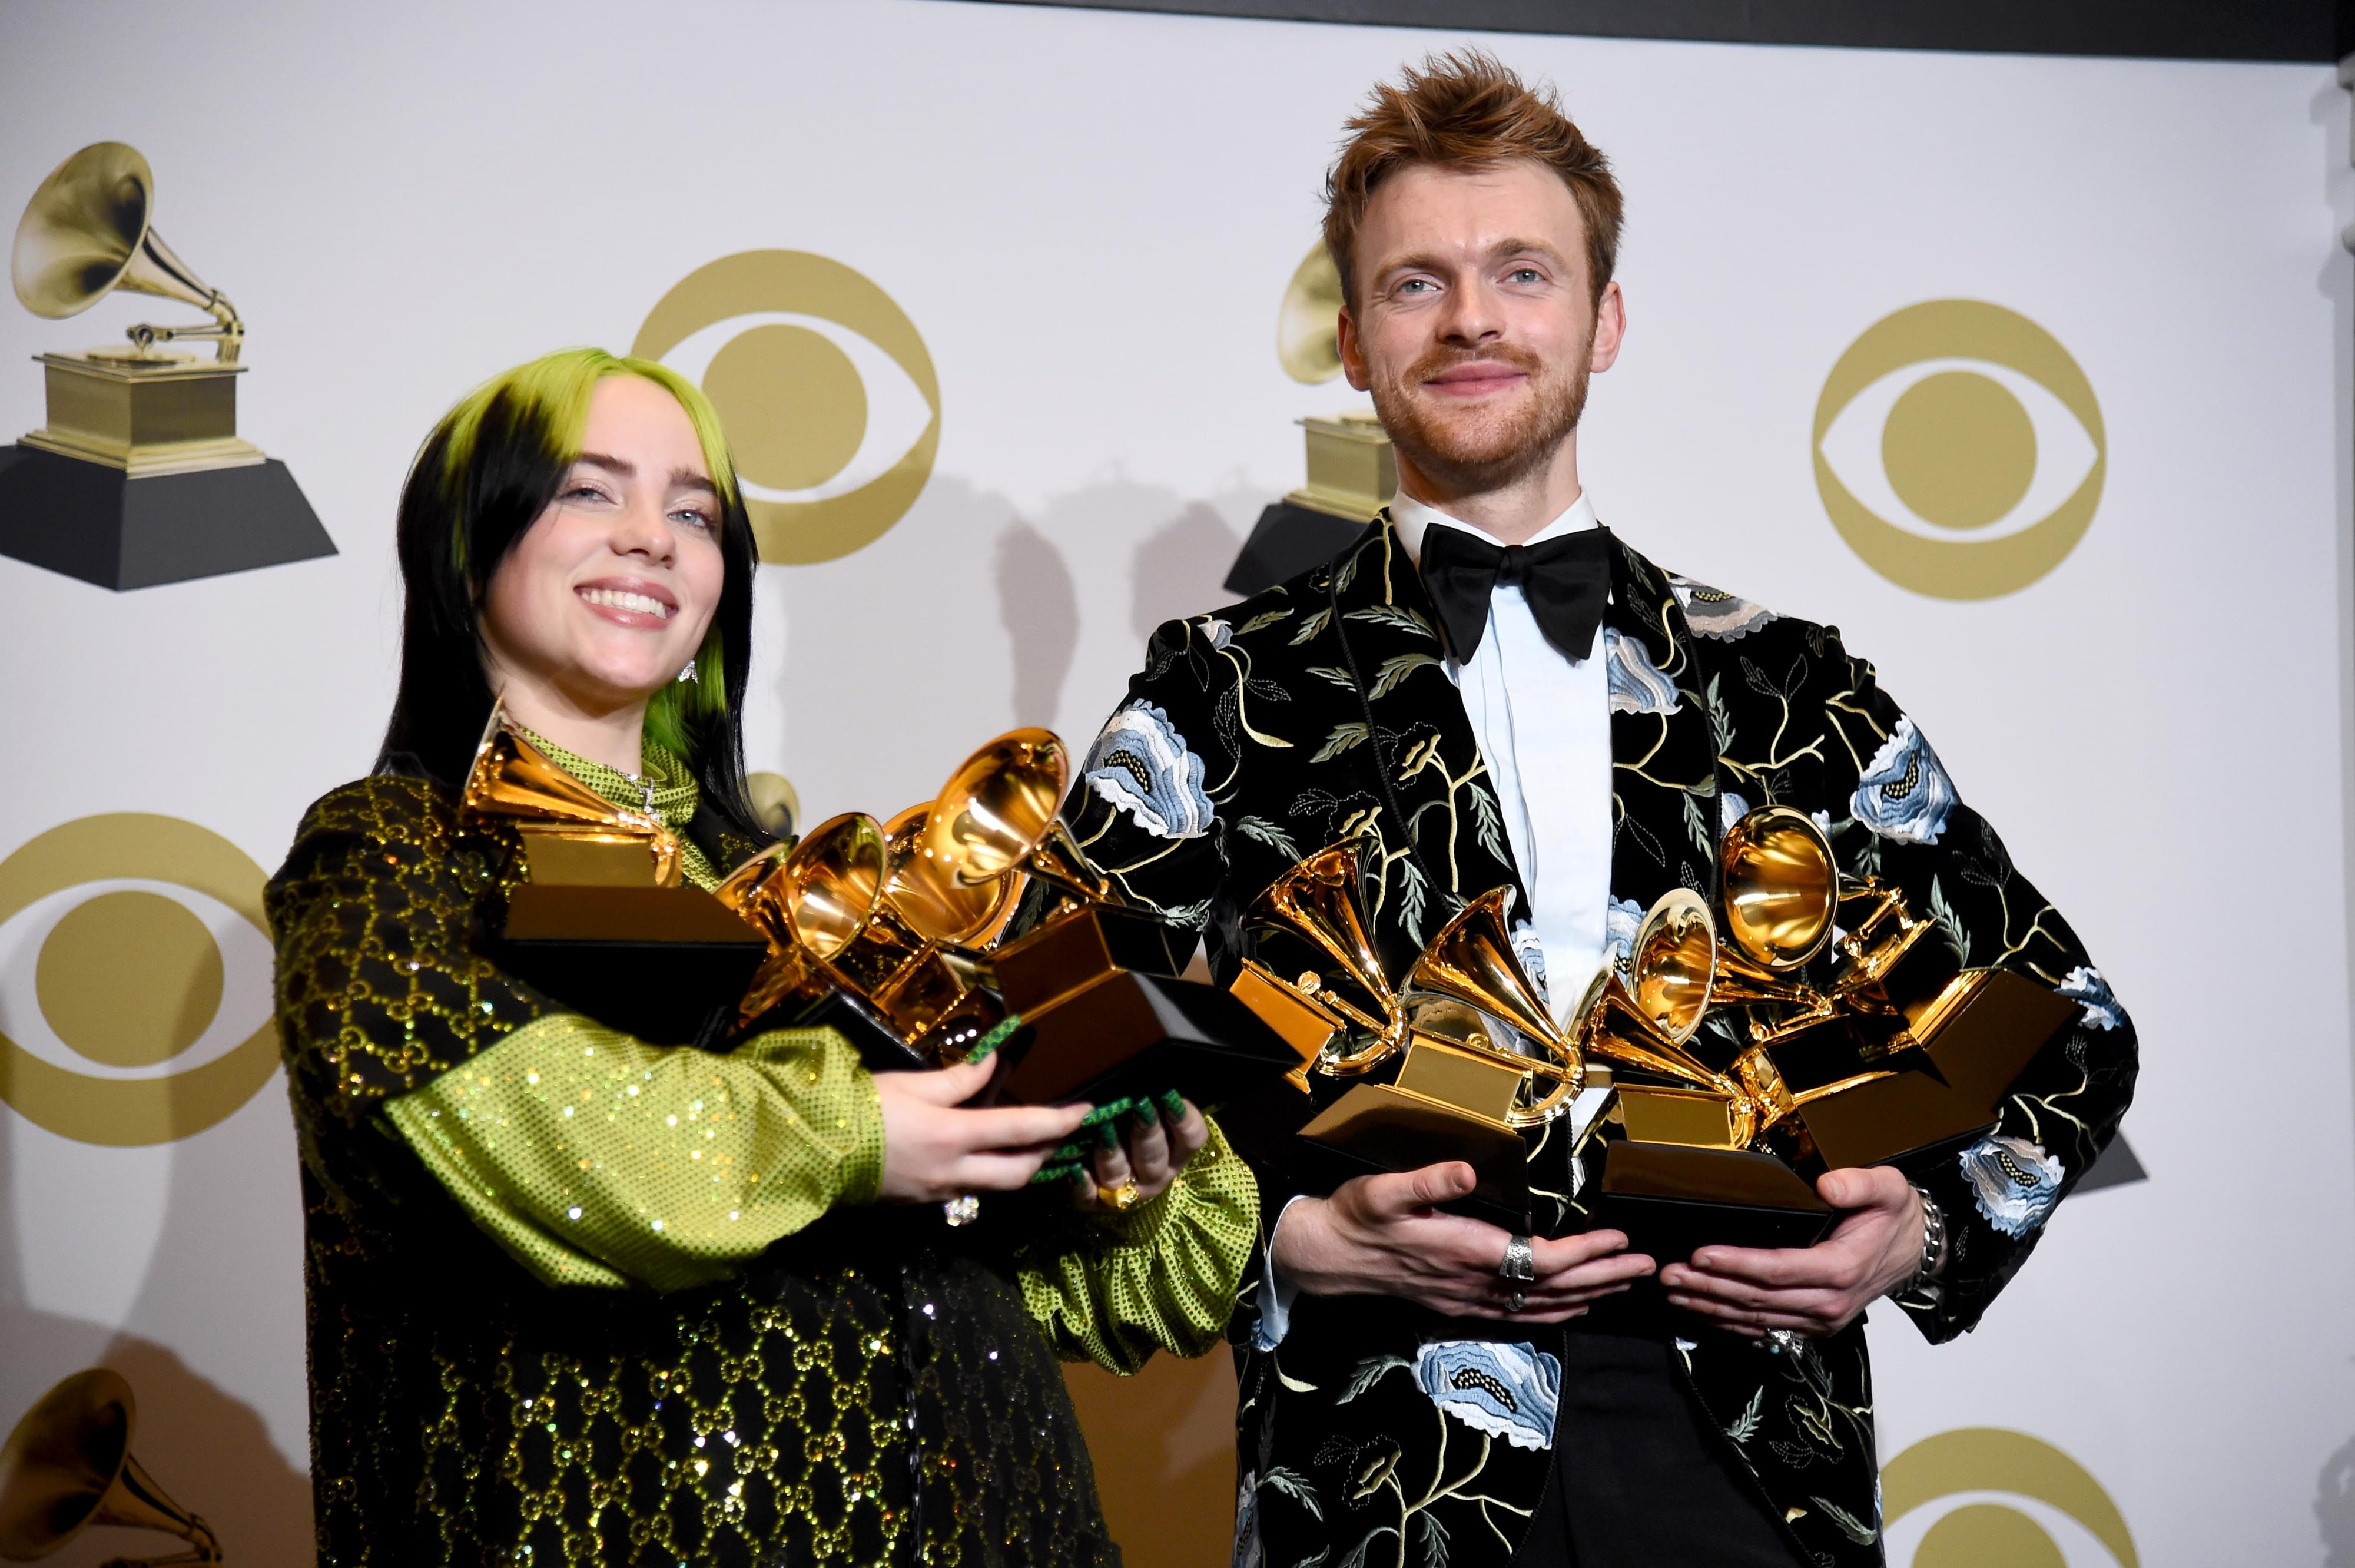 [WATCH] Billie Eilish Sweeps Grammy Awards, Wins 'Big Four'